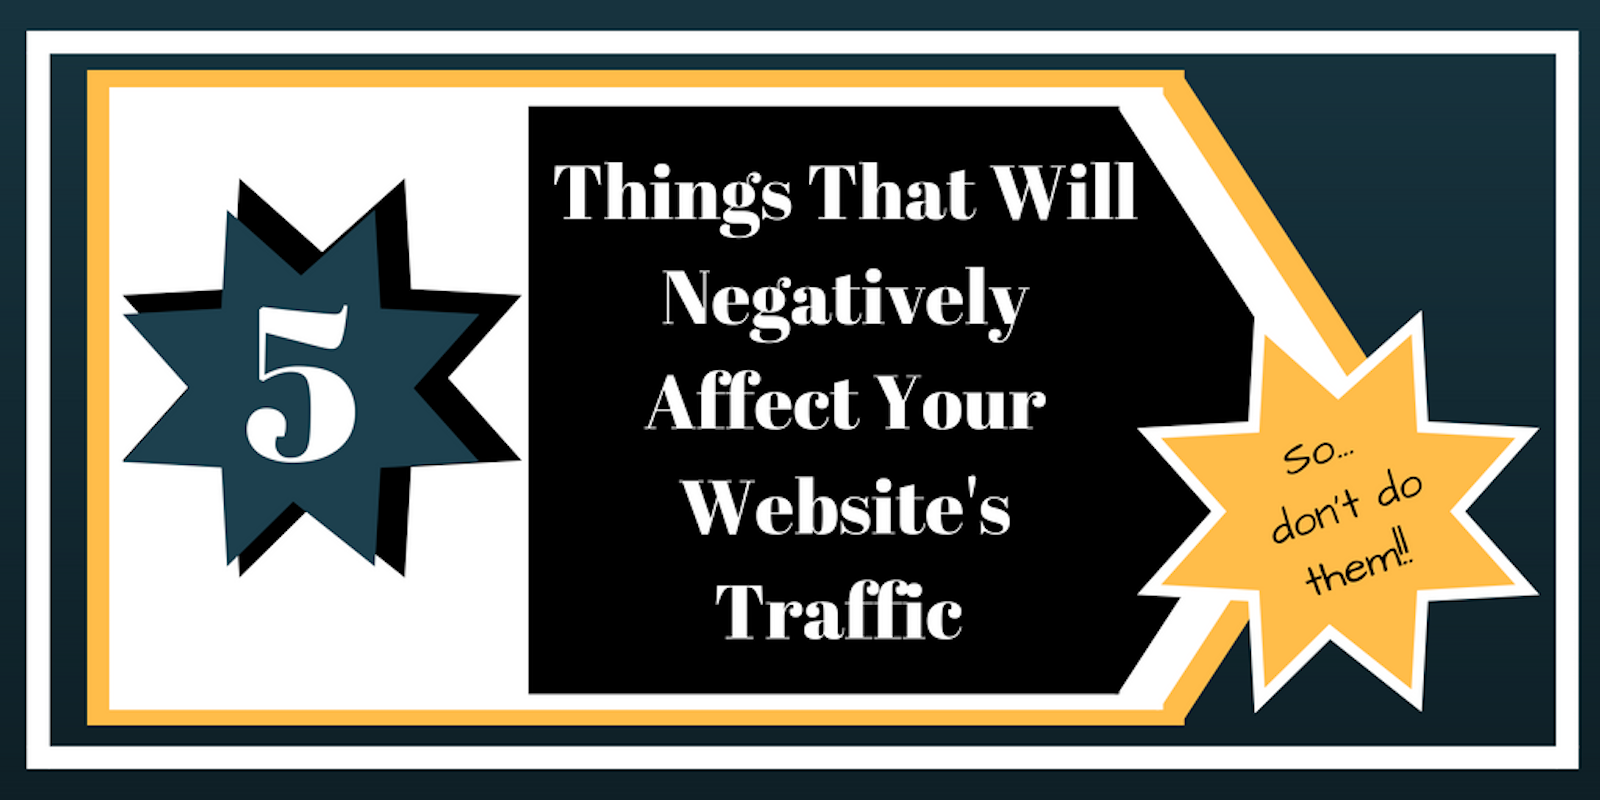 5 Things That Will Negatively Affect Your Website Traffic